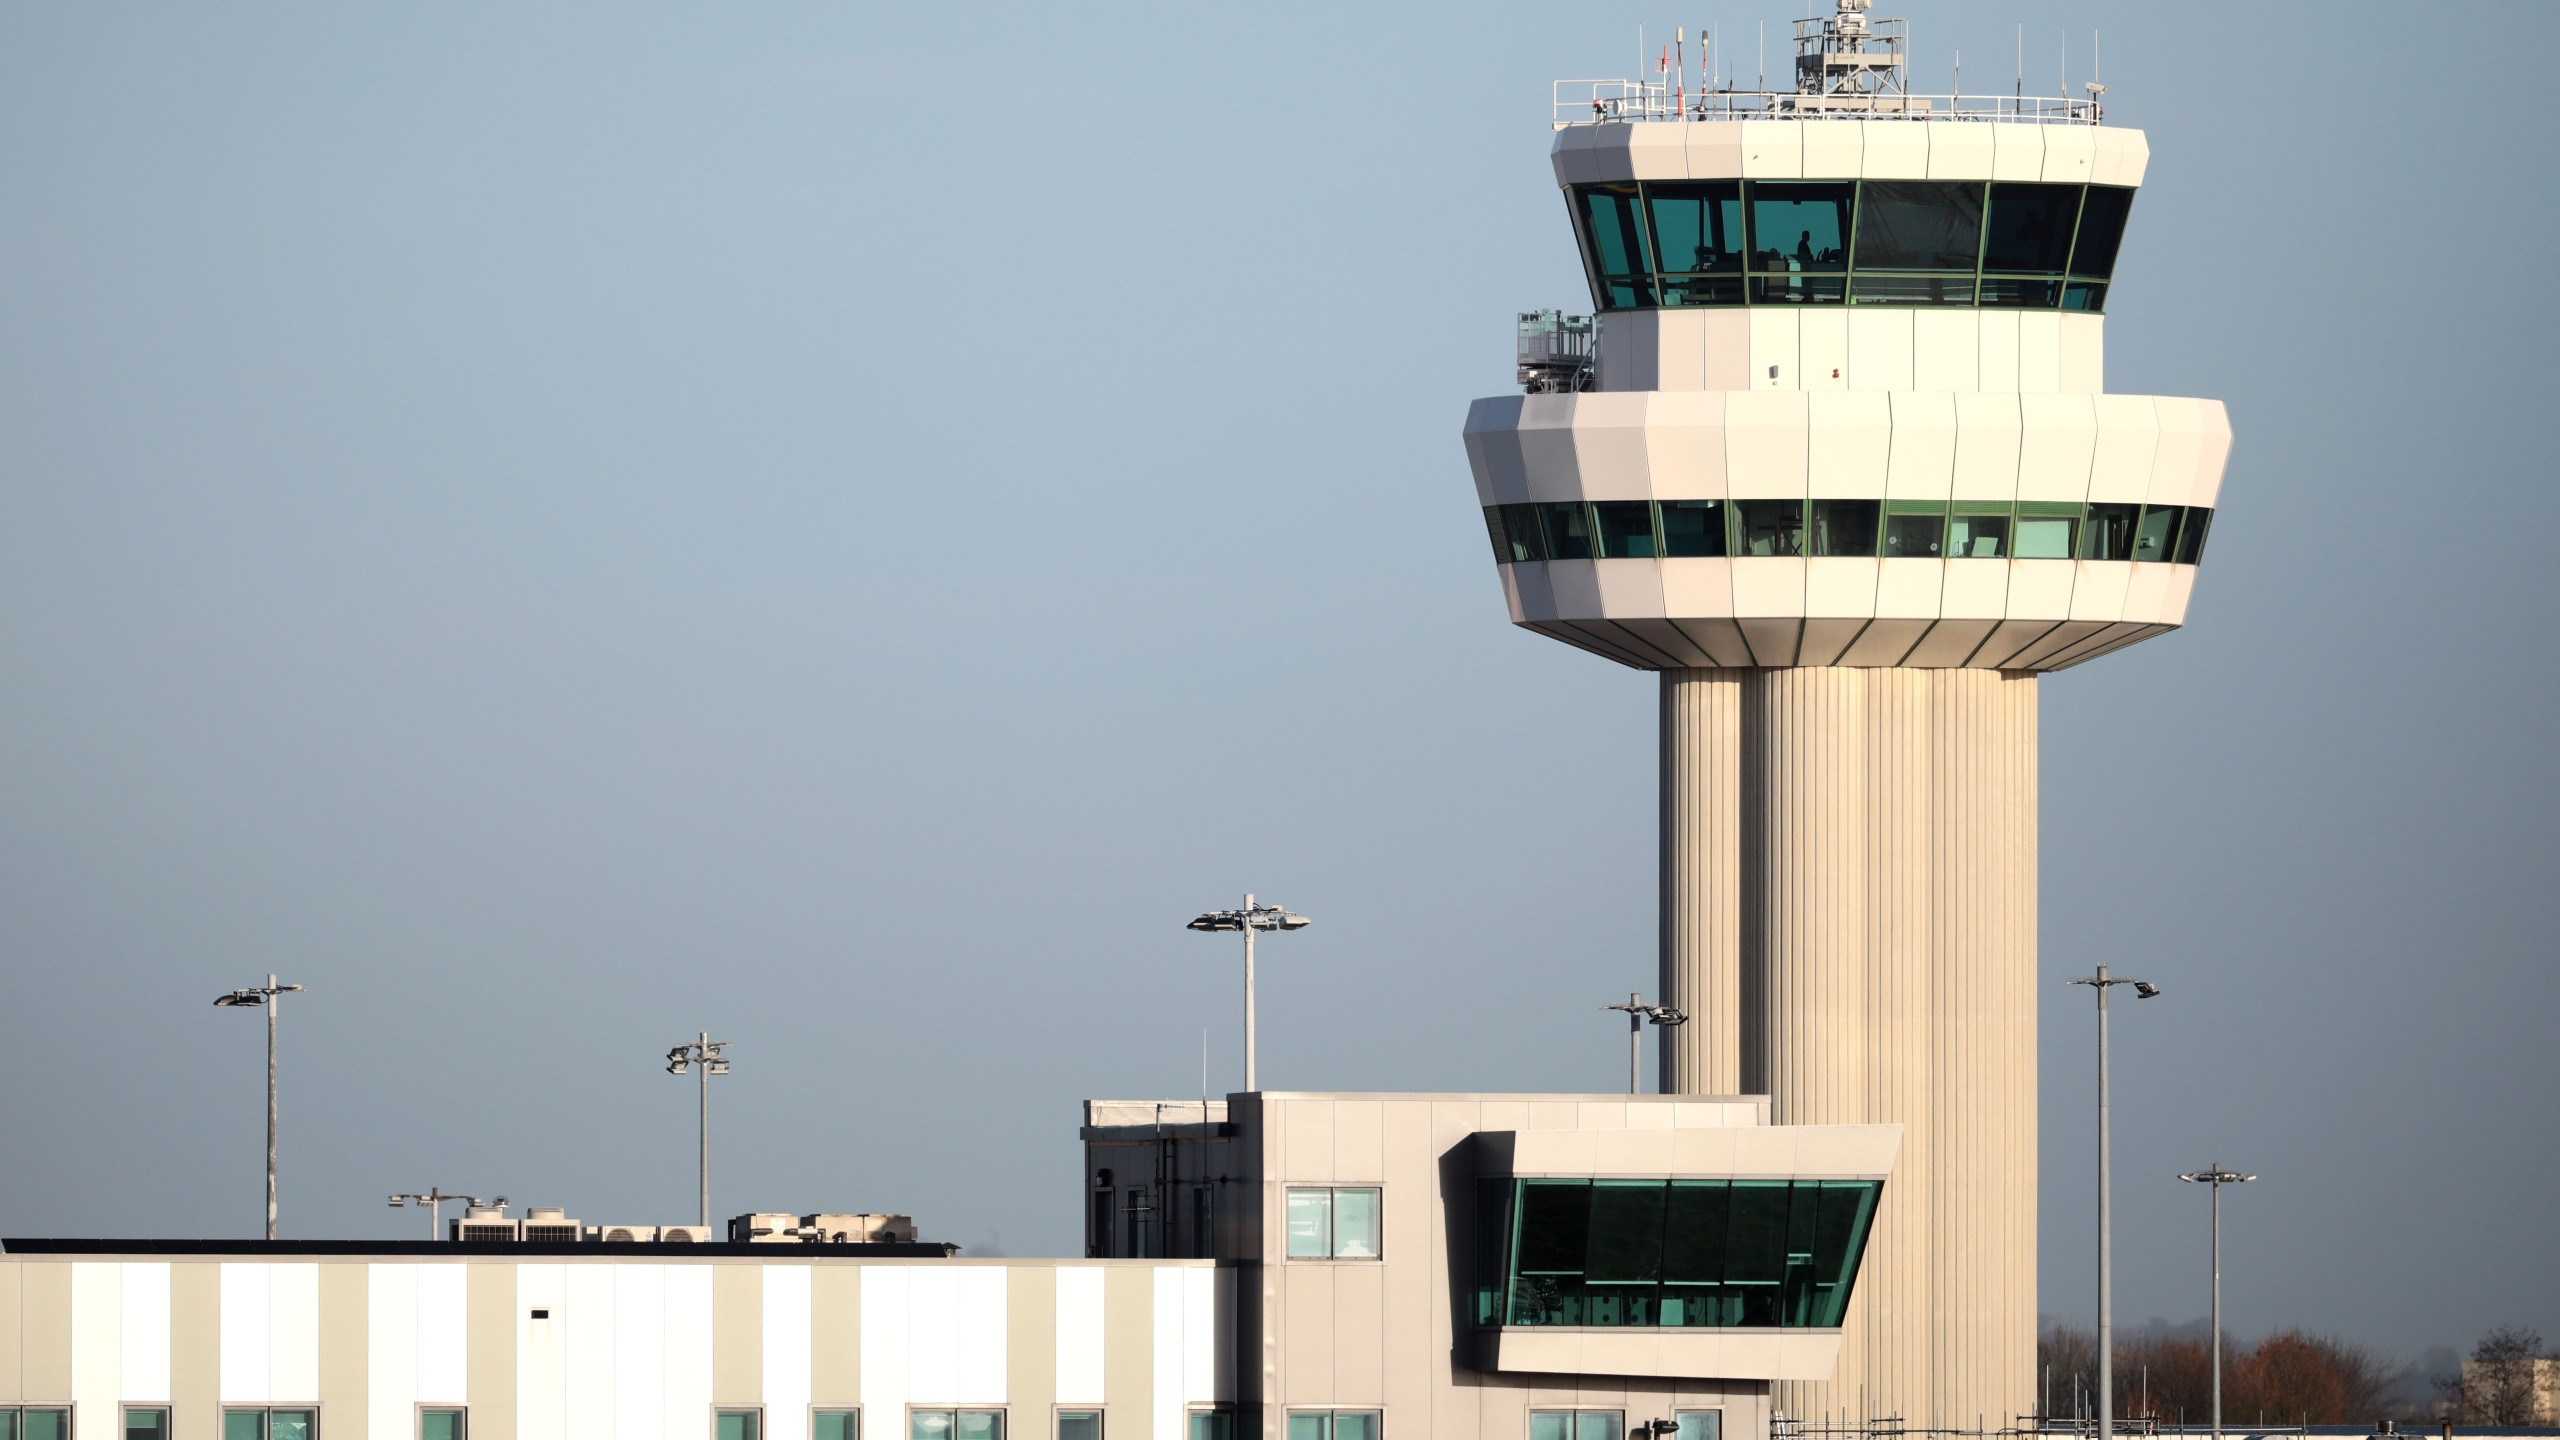 A view of the control tower at Gatwick Airport on December 20, 2018 in London, England. (Credit: Dan Kitwood/Getty Images)